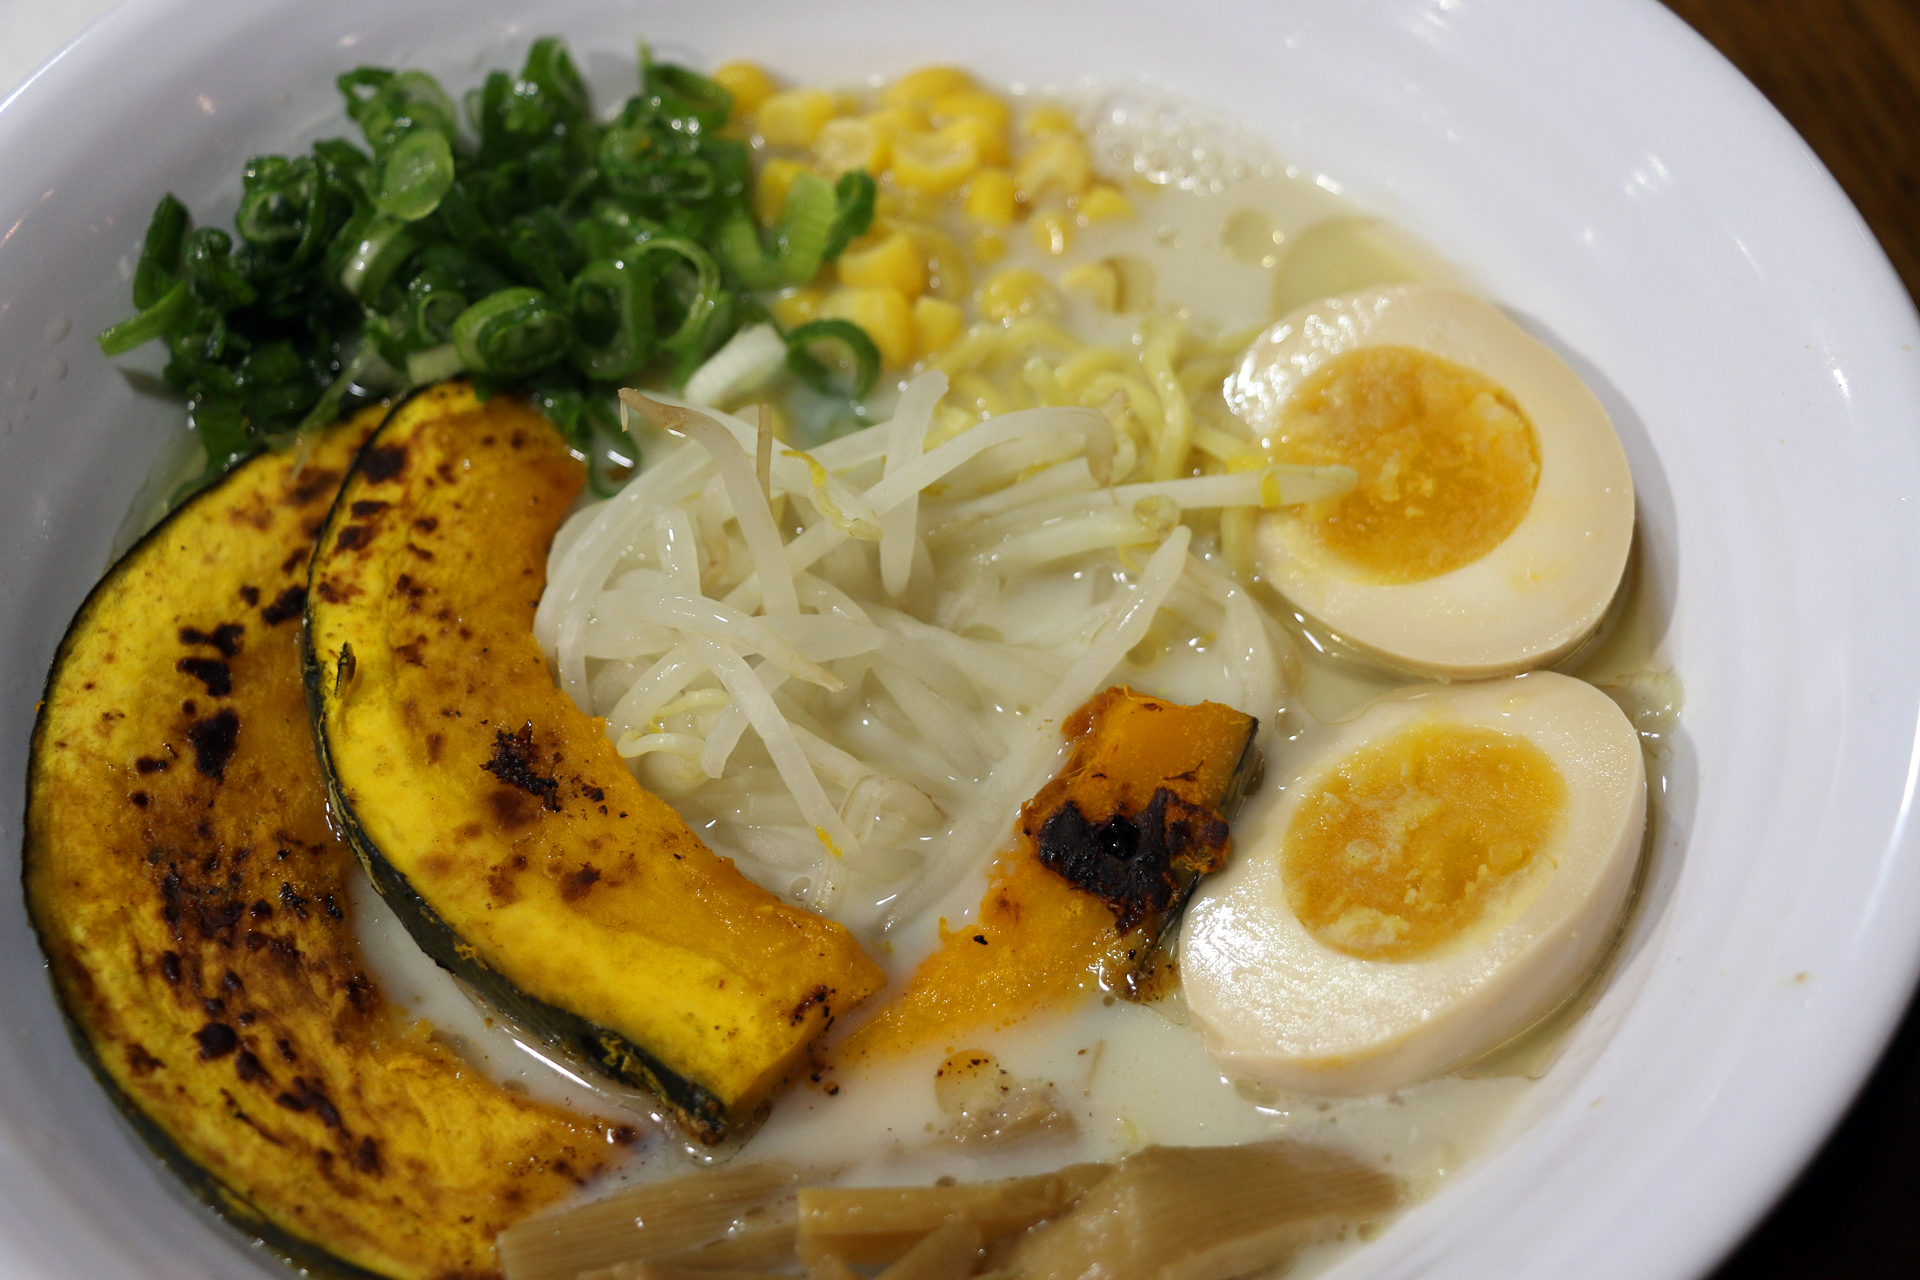 Soy milk ramen, which is vegan if you omit the egg, at Shiba Ramen